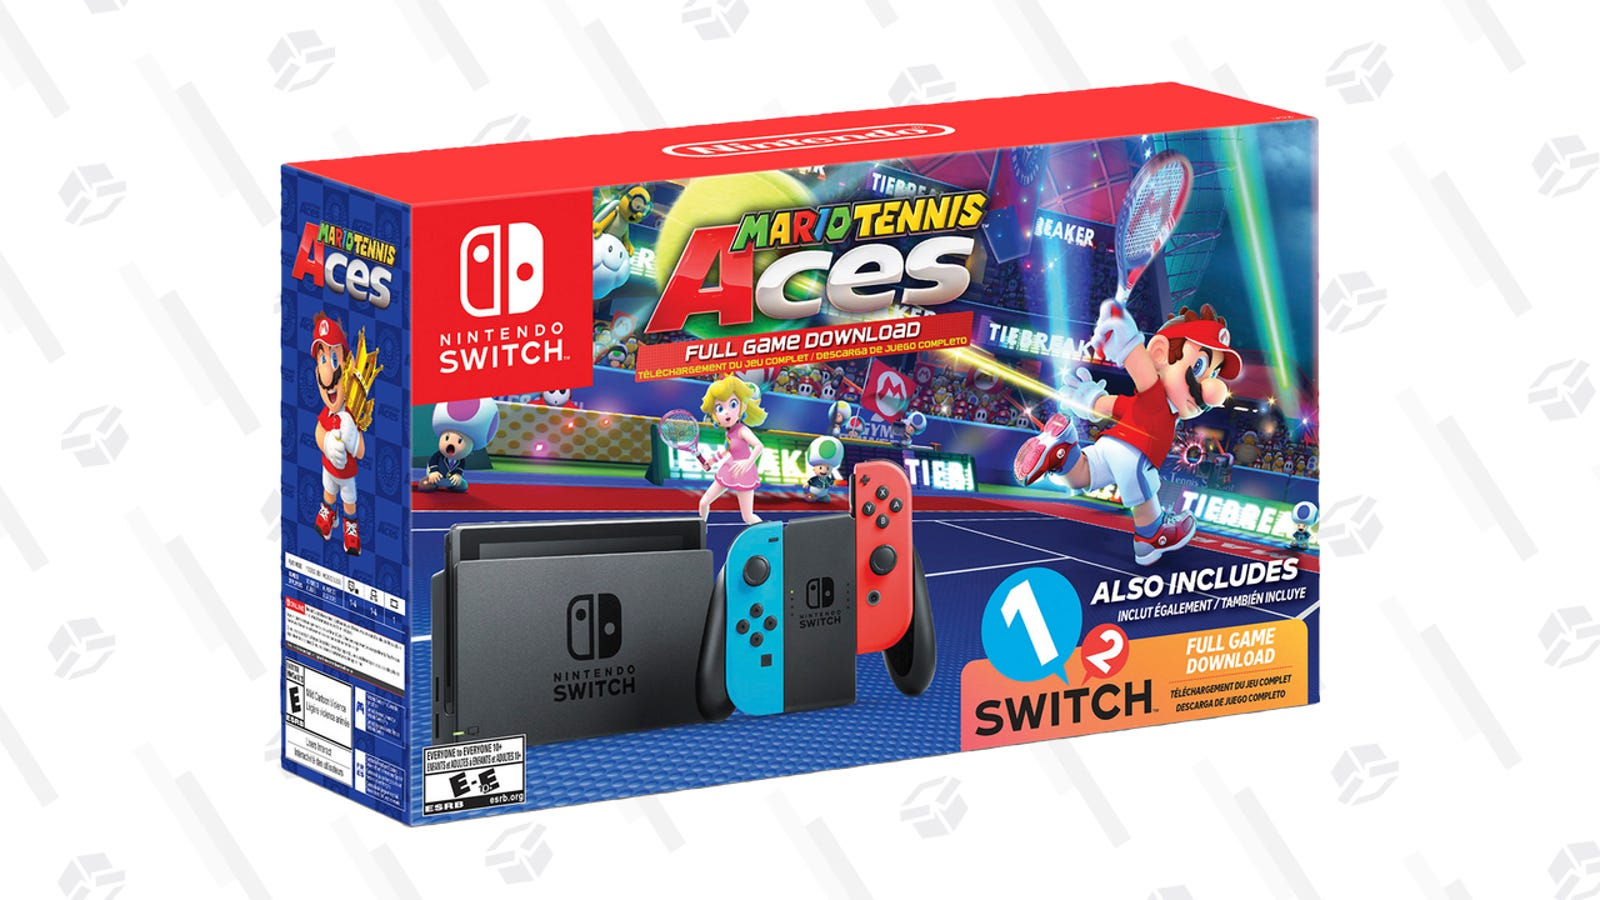 You Can Now Preorder The Nintendo Switch/Mario Tennis Aces/1-2 Switch Bundle at Walmart